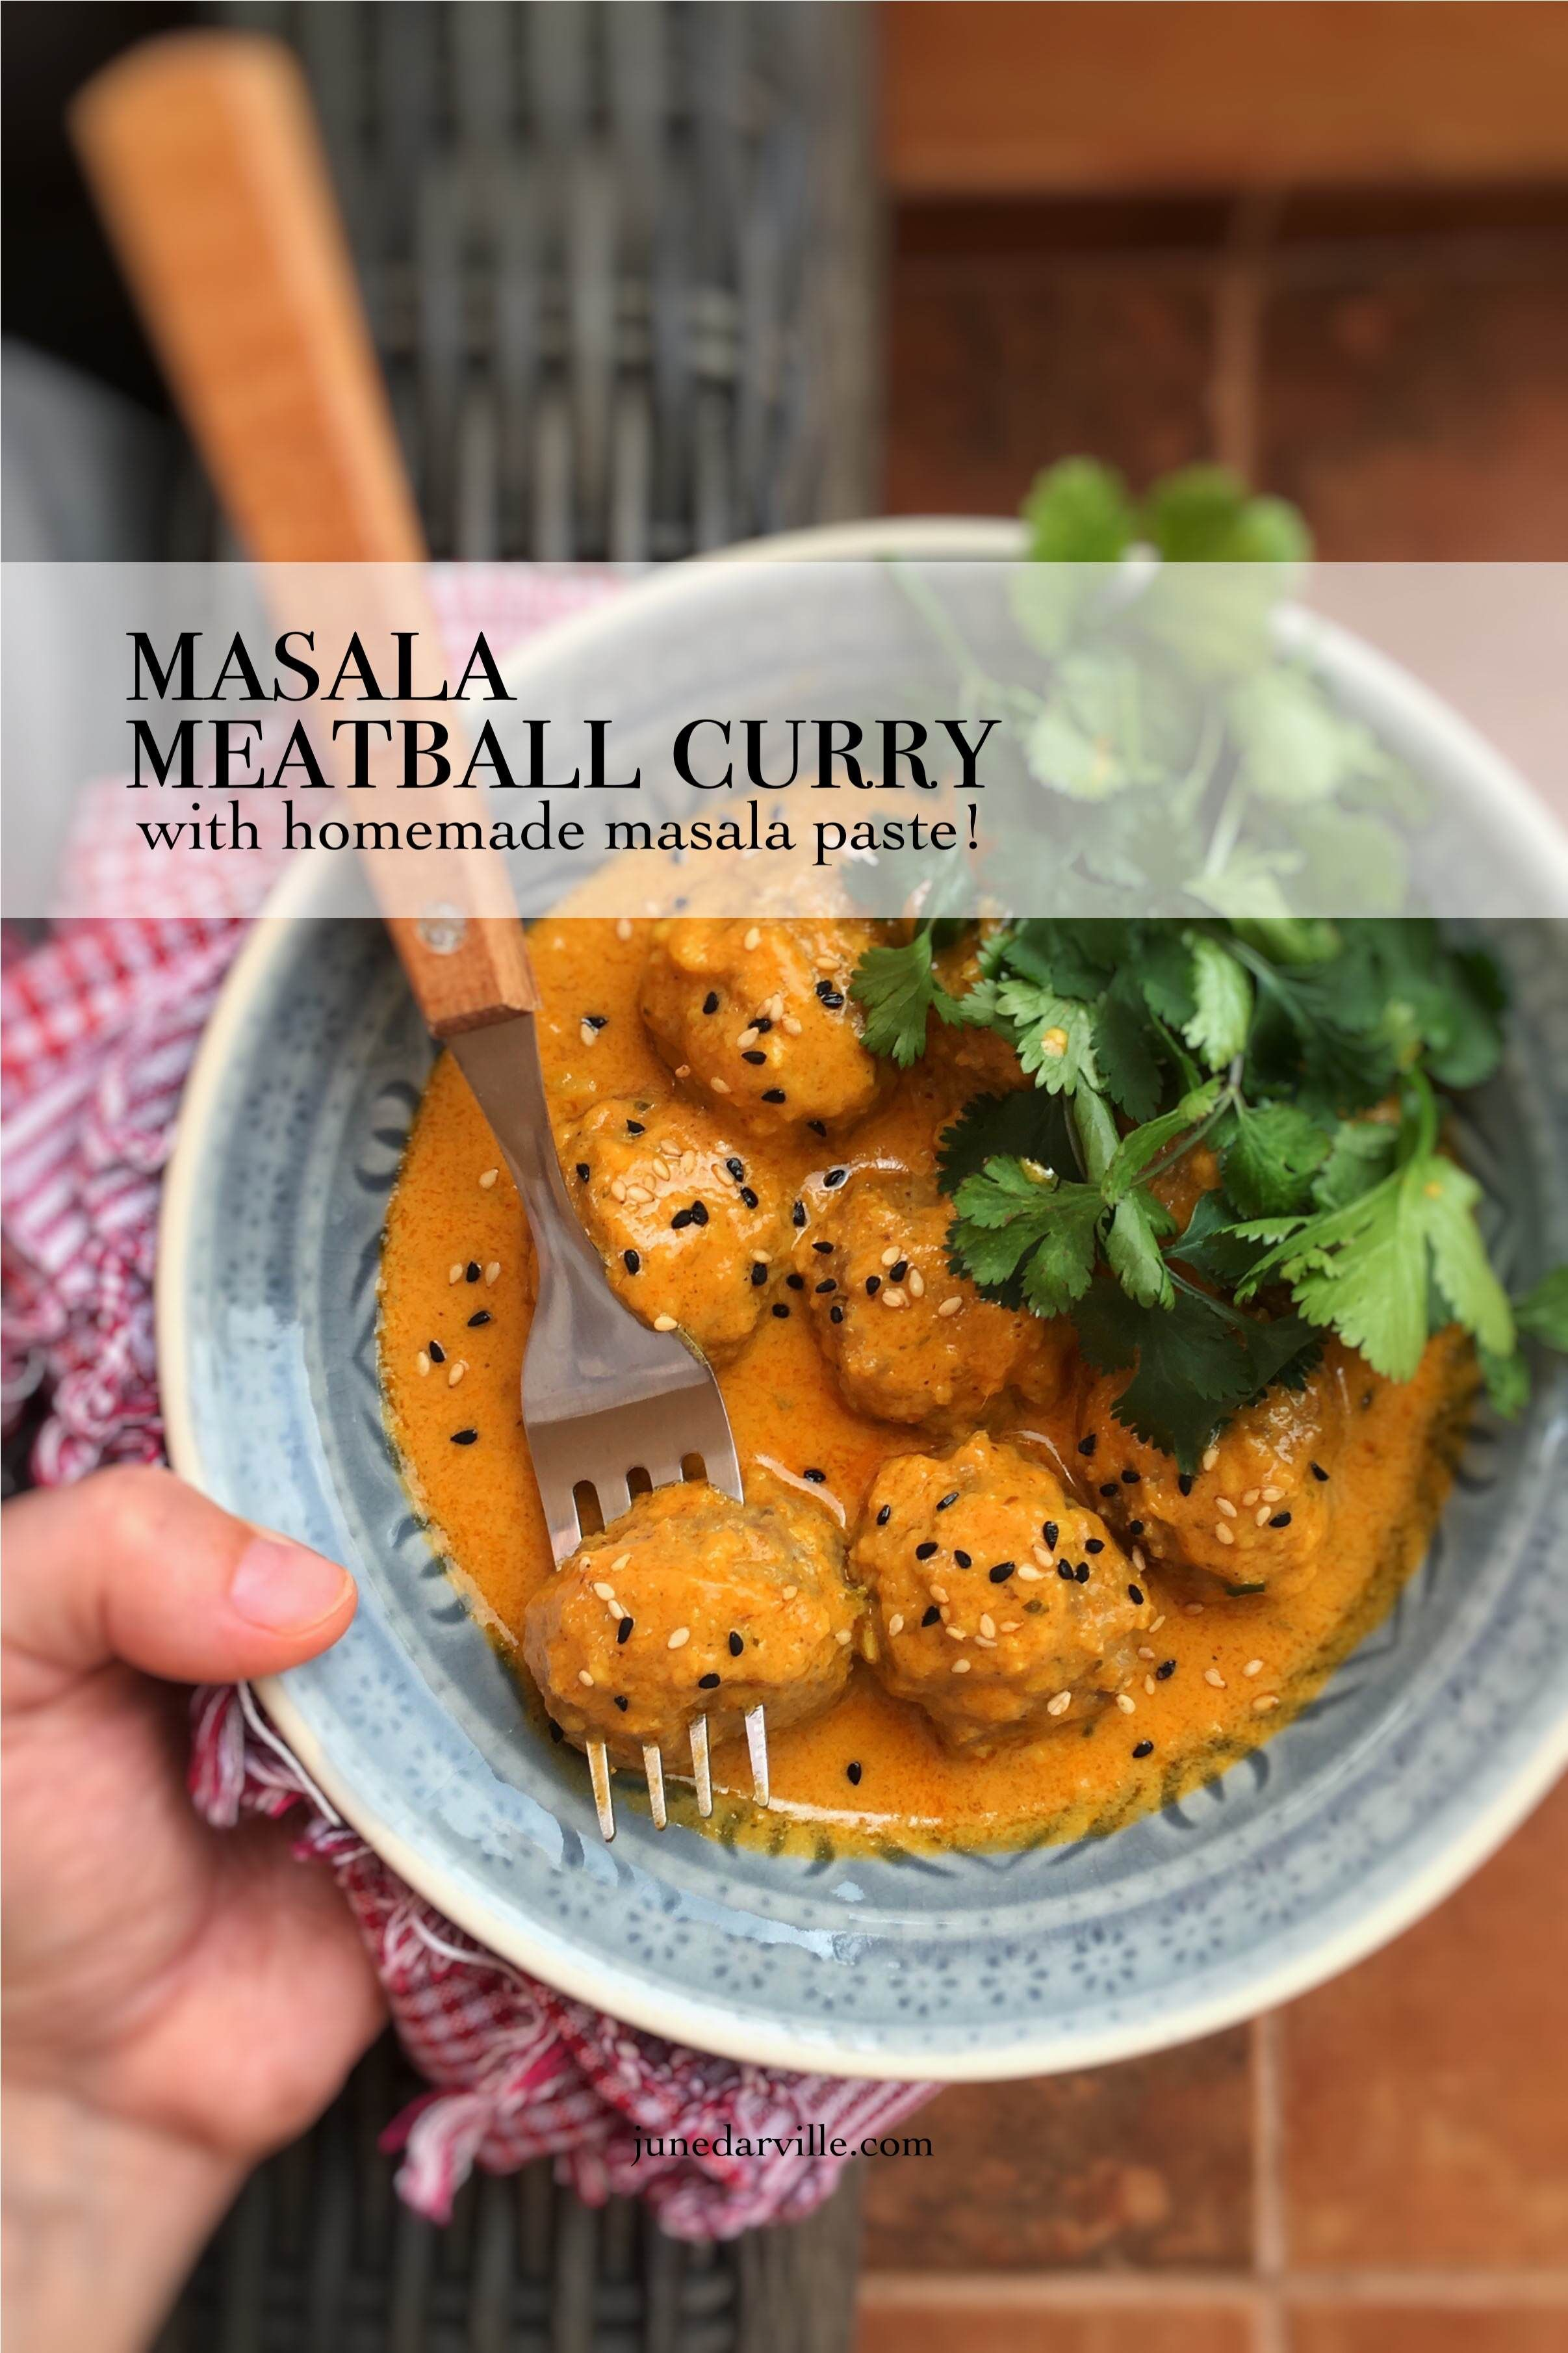 Creamy masala meatball curry recipe food to try pinterest creamy masala meatball curry recipe forumfinder Image collections